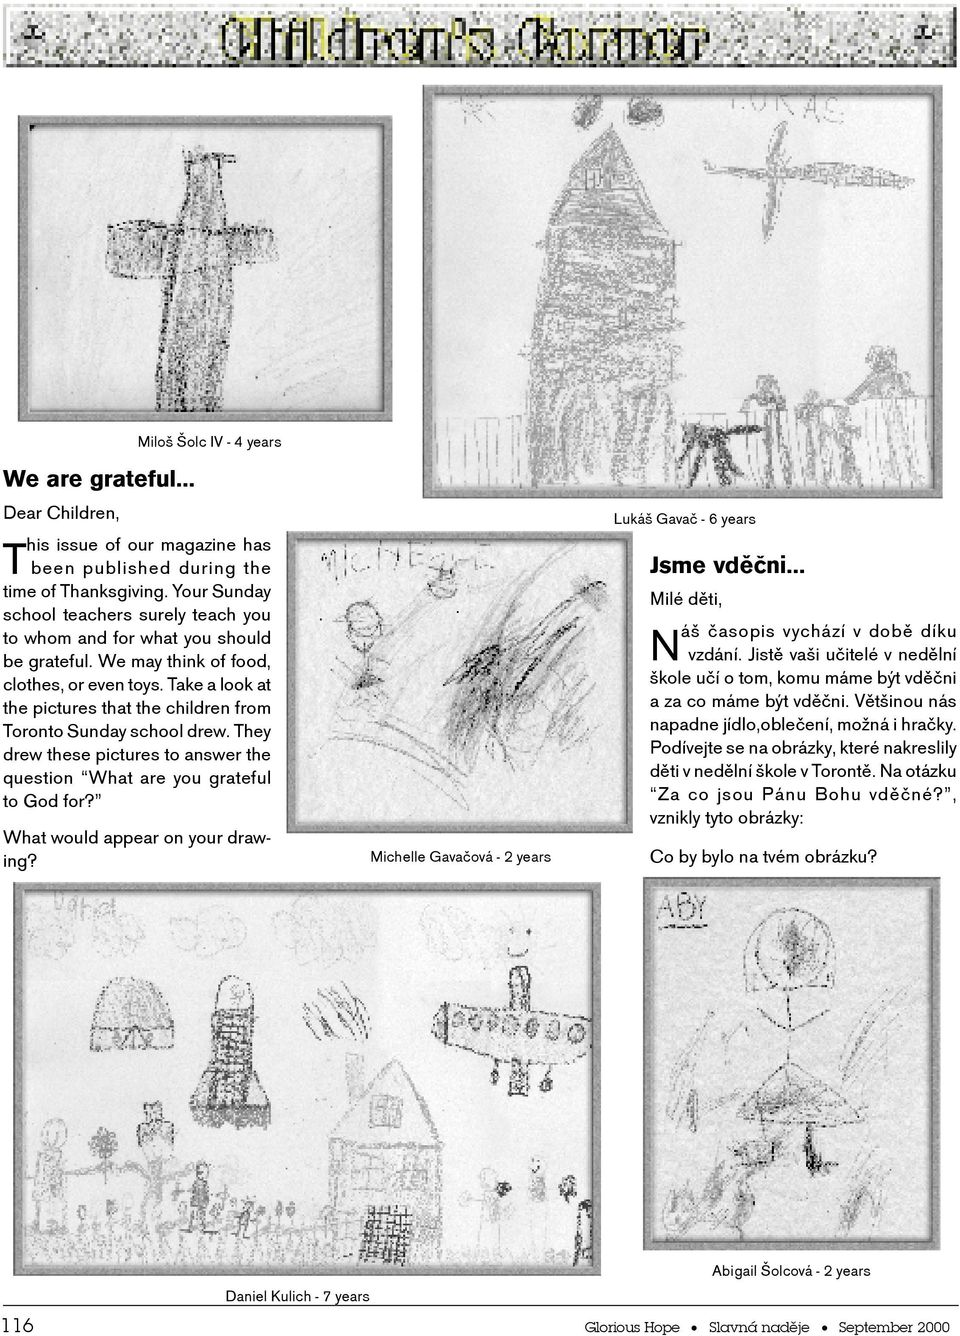 They drew these pictures t answer the questin What are yu grateful t Gd fr? What wuld appear n yur drawing?